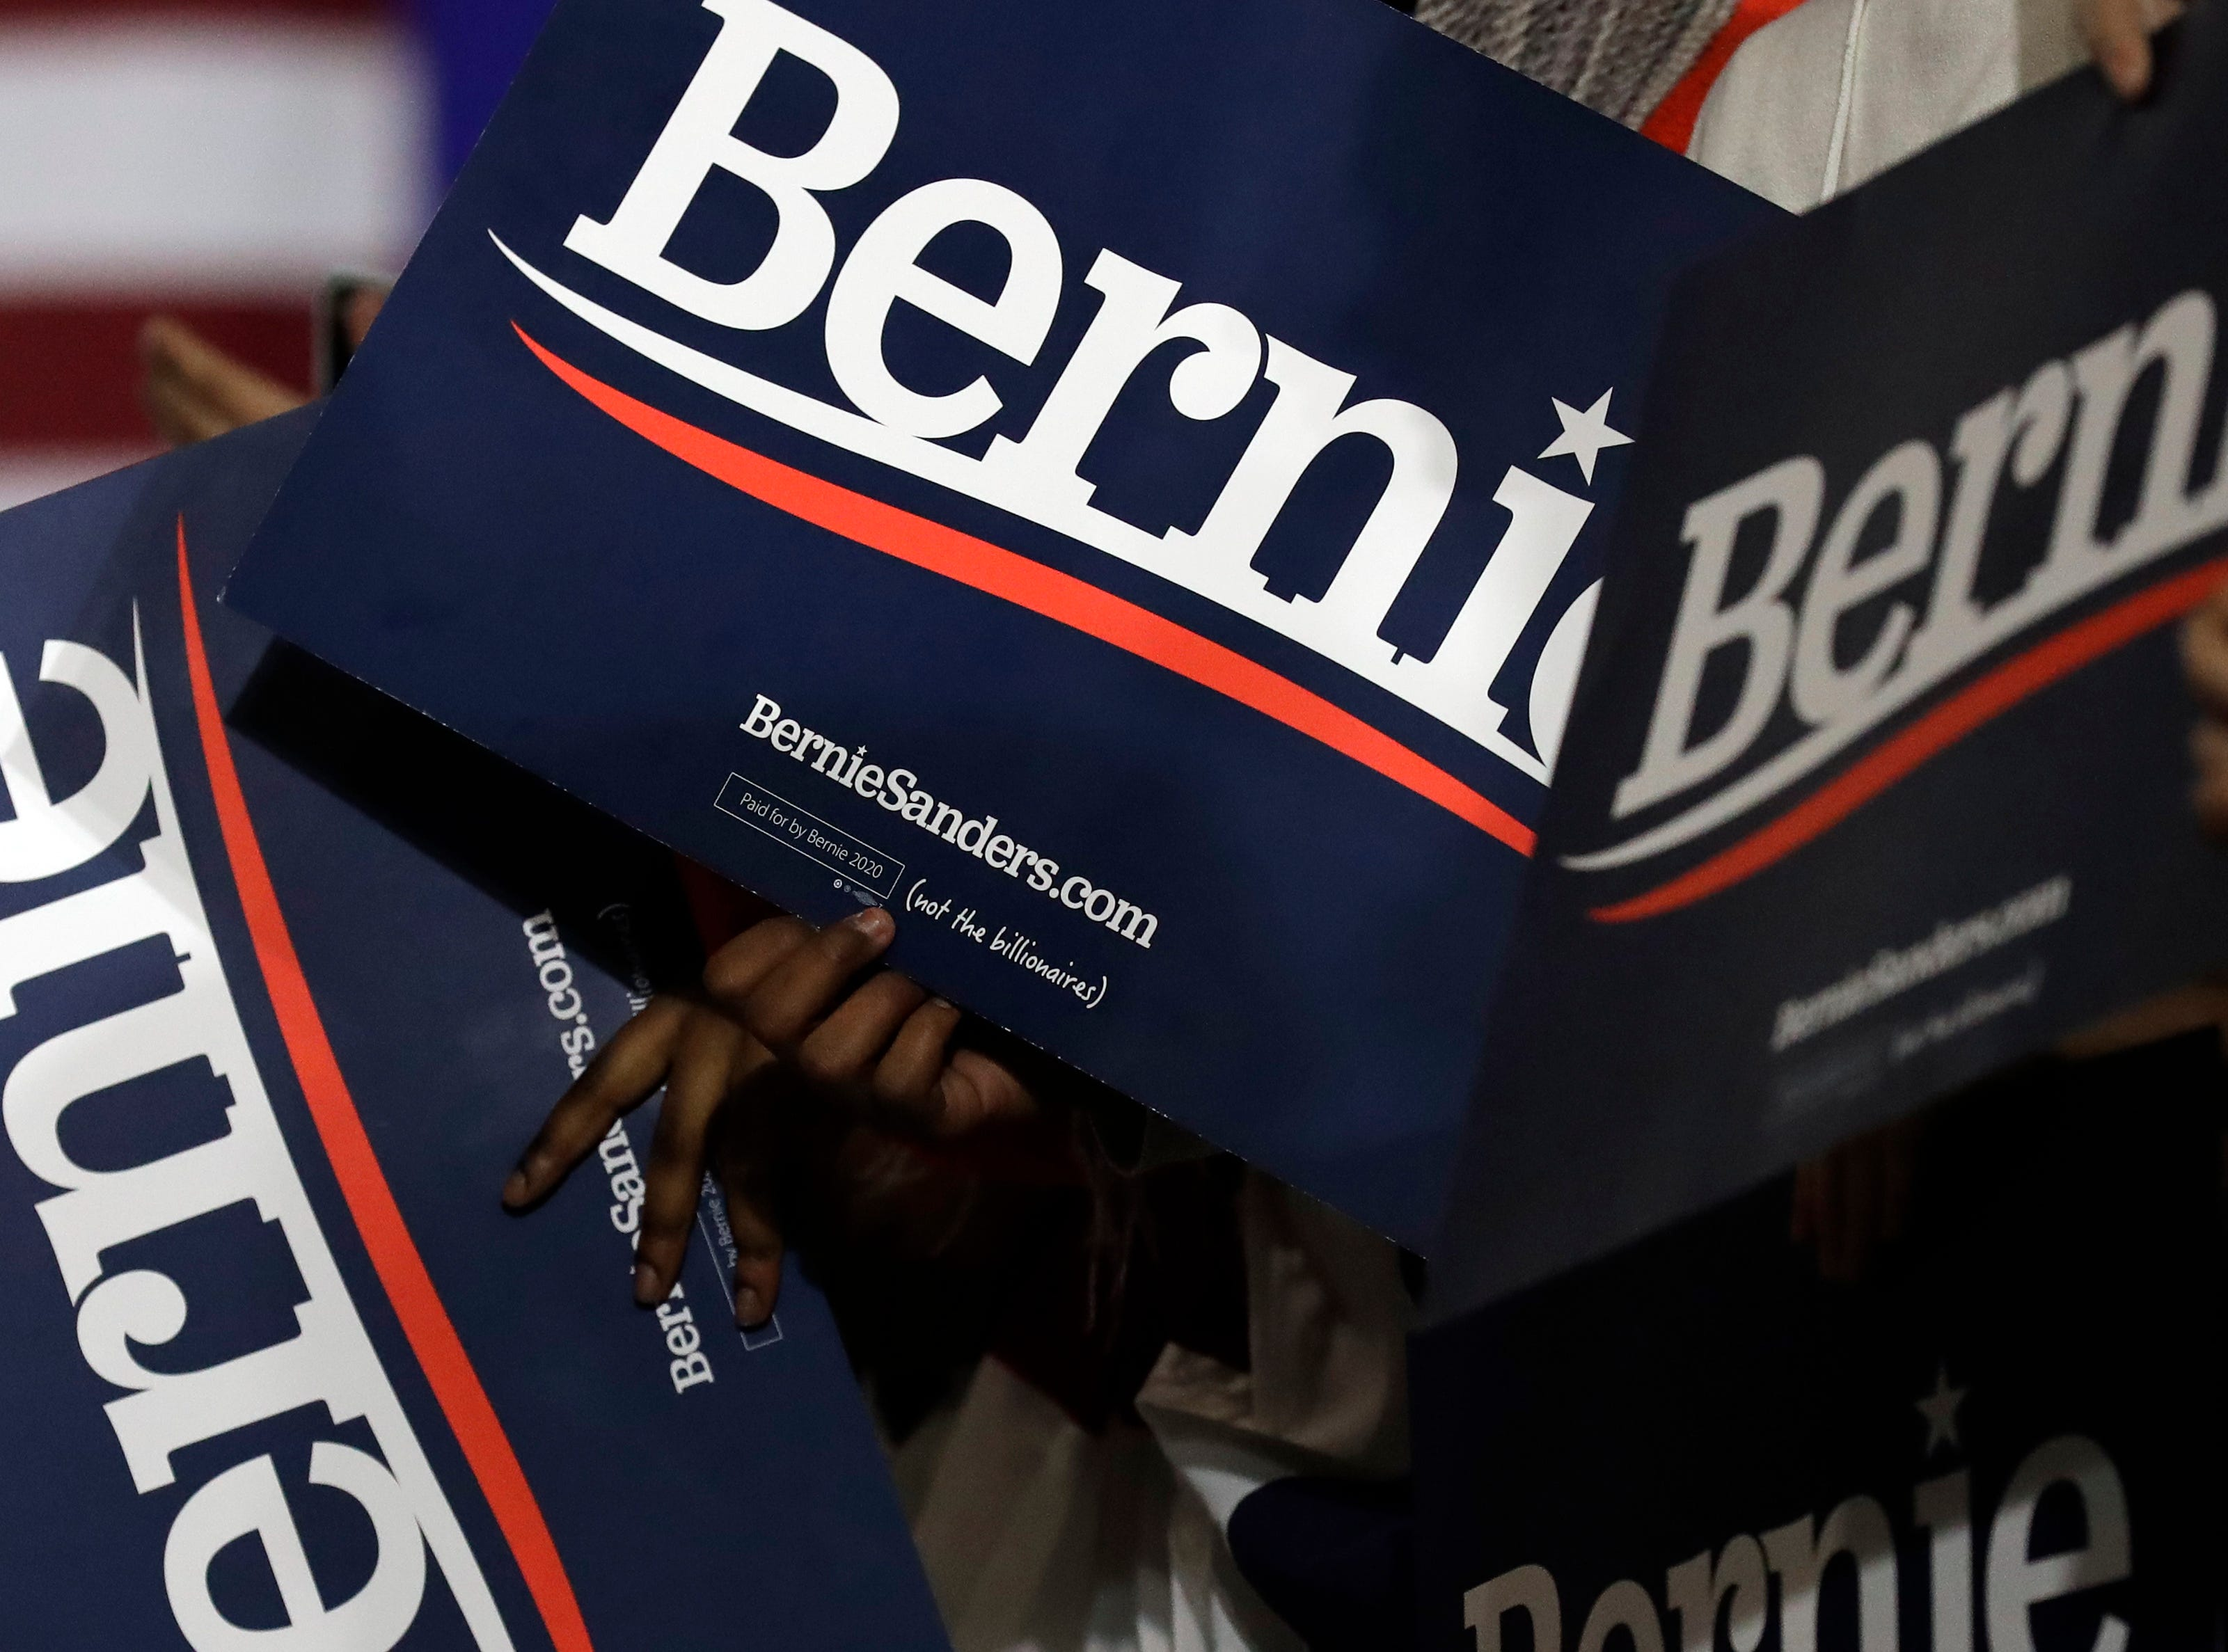 Supporters wait for Sen. Bernie Sanders at 2020 presidential campaign in Chicago, Sunday, March 3, 2019. Over the next several weeks, Sanders will travel to Iowa, New Hampshire, South Carolina, Nevada, and California. He will then return to Burlington, Vermont, for the official launch of his campaign.